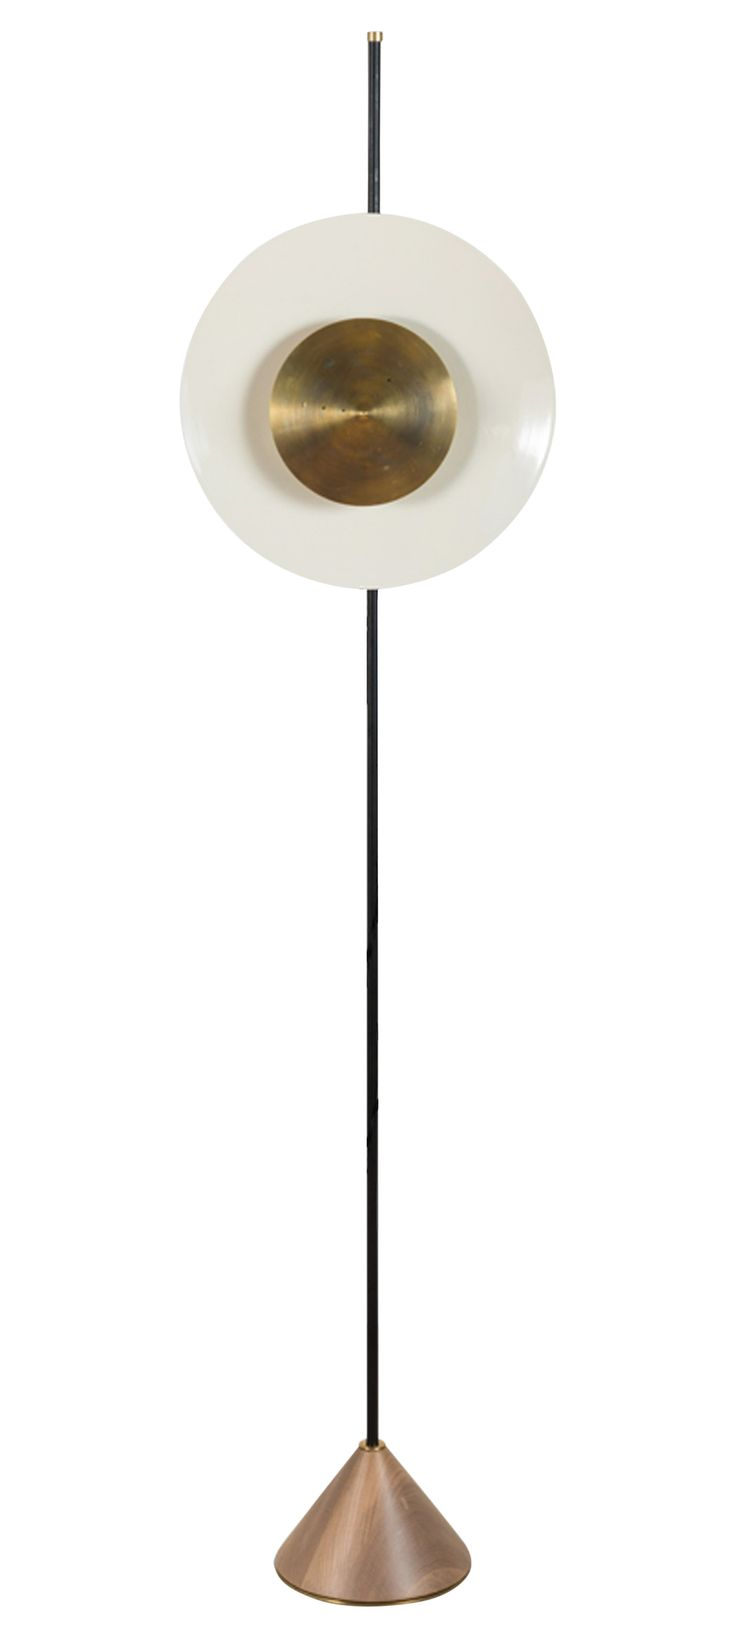 Pruckel Floor Lamp  Contemporary, Industrial, Transitional, Metal, Wood, Floor Lamp by Lawson Fenning